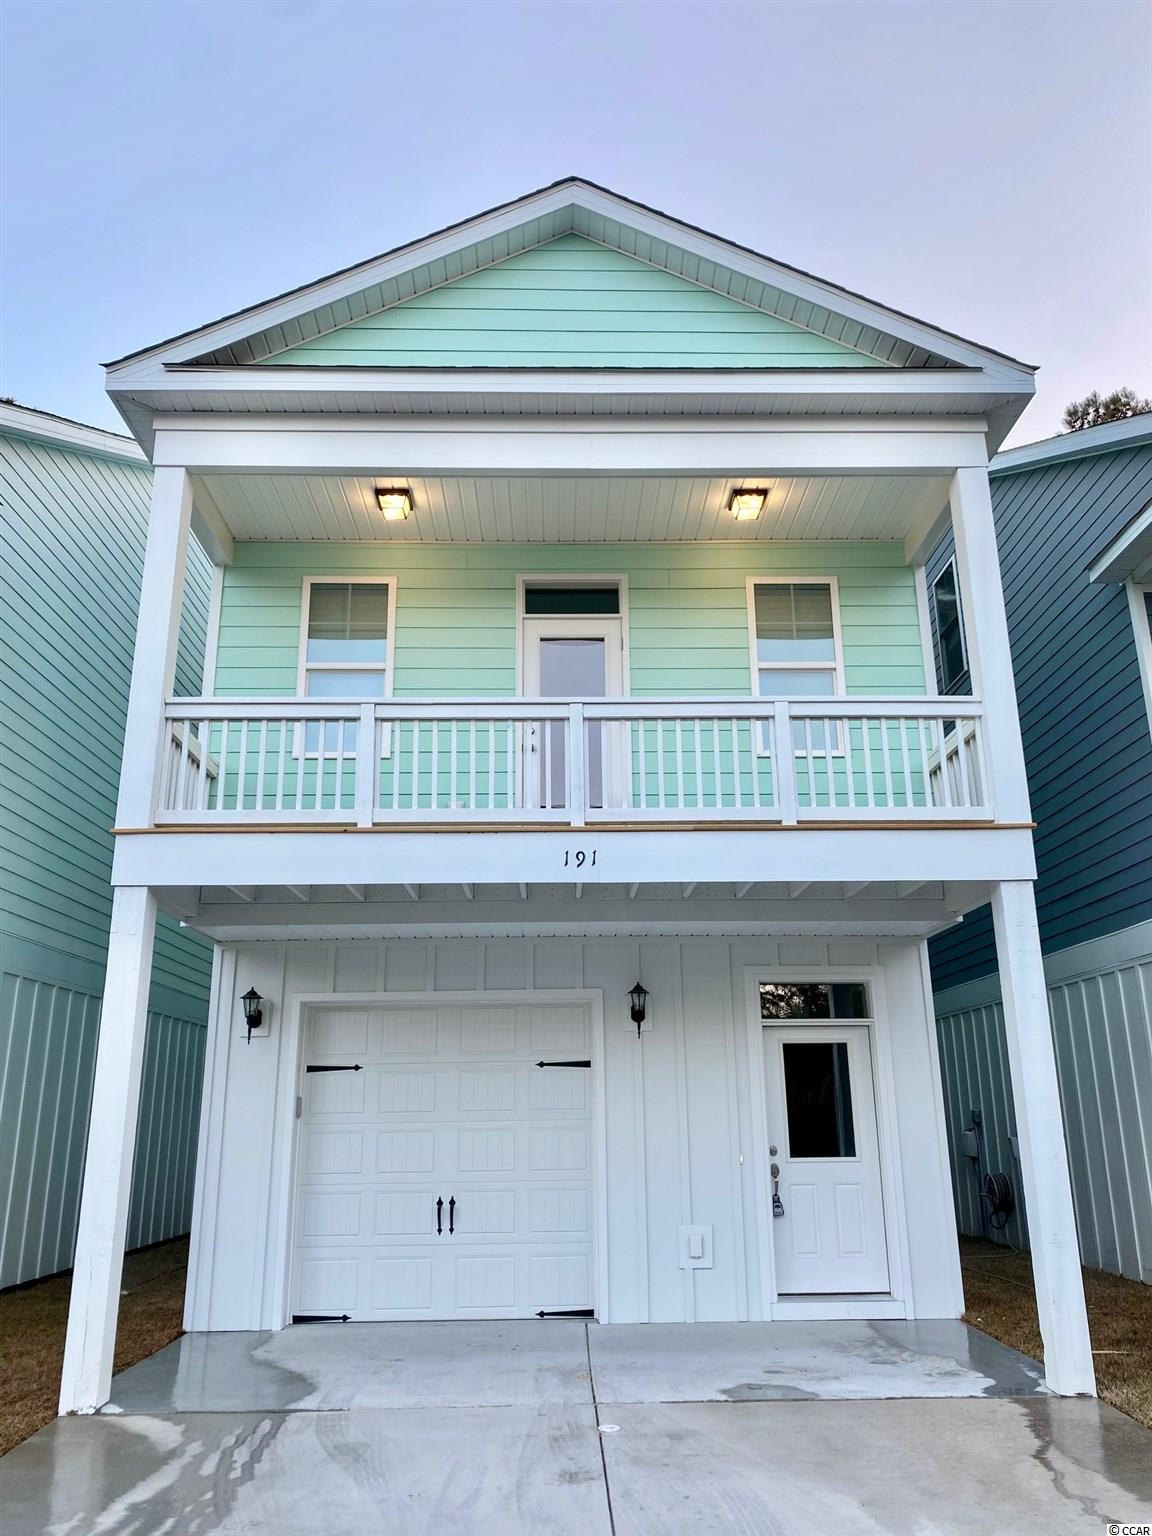 """BRAND NEW RAISED BEACH HOME To Be Built & Located 1 Mile From The Beach! Enjoy Easy Living At Jamestowne Landing, Which Has An HOA That Manages The Homeowners Insurance, Exterior Maintenance, Trash Pickup, Cable TV, Lawncare/Landscaping, Pest Control & Community Pool Which Is Only Steps Away. GOLF CART TO THE BEACH Straight Down Jamestown Rd/Atlantic Ave To Multiple Garden City Beach Access Points (1.25 Mile Route). Enjoy All The Garden City Beach Restaurants, Garden City Pier, Arcade & Shops. Restaurants & Shops Are Within Walking Distance Of Community As Well. The """"SANIBEL"""" Model Offers 3 Beds, 2 Full Baths, And Has A DEEP One-Car Attached Garage & 2 Car Parking Pad... PLUS... Shared Parking Throughout The Community. Plenty of Room In The Garage For Your Toys. The Inviting Front Covered Porch Has Overhang & (Optional) Paddle Fans...All You Need Is Your Glass of Iced Tea! Exterior Is Low-Maintenance Concrete Fiber Siding. Half Bath Can Be Added on Ground Level Behind Garage. Upgrades Available For Your Customization. Several Floor Plans With Ground Level Bonus Room & Extended Master Bedroom Are Available For This Site. Lot 403 Backs Up To Wooded Area. Ideal Primary Home or Beach Getaway! Pictures Are Of A Similar Existing Upgraded Model. Sq. Ft. Is Approximate And Not Guaranteed, Buyer To Verify."""